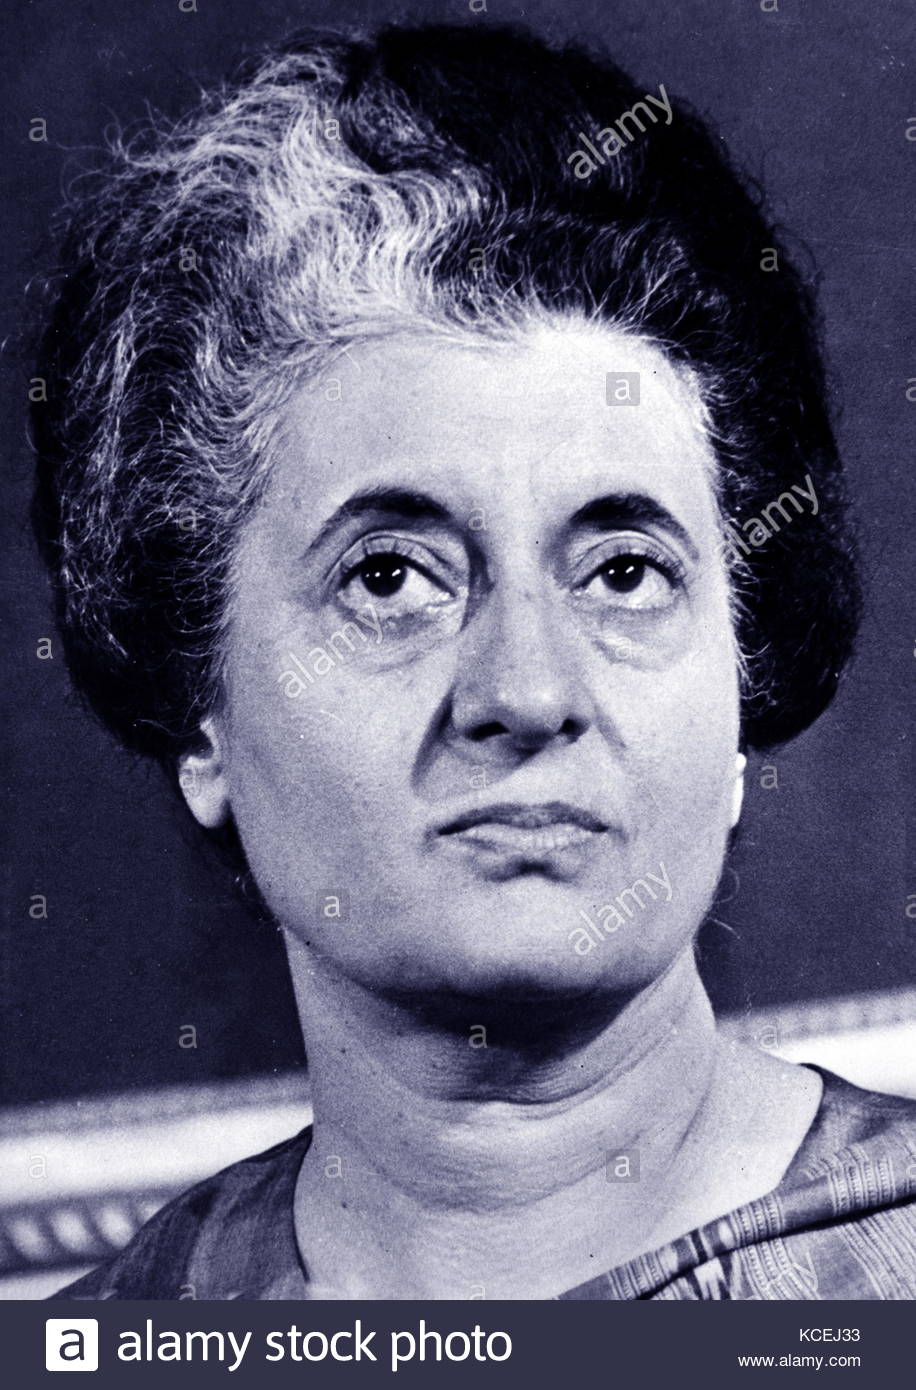 prime minister and gandhi Following the death of indian prime minister lal bahadur shastri, indira gandhi  becomes head of the congress party and thus prime minister of india.